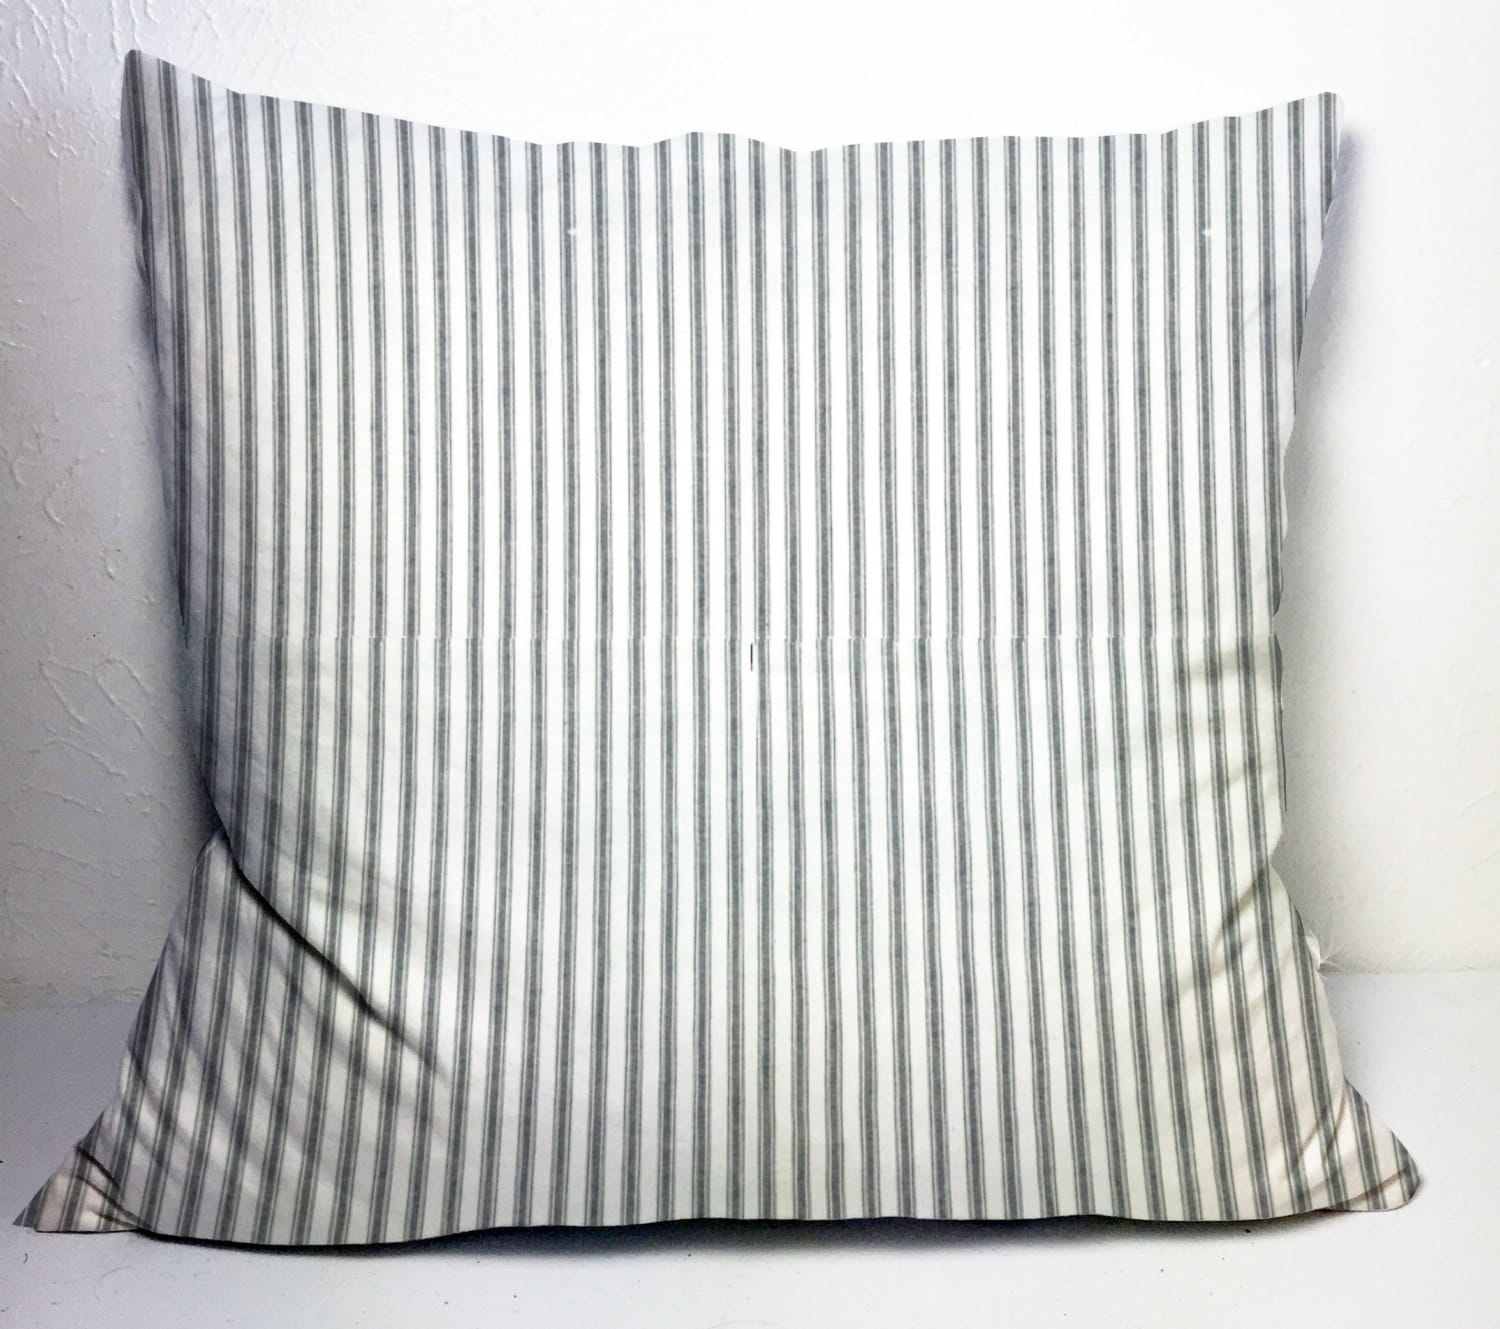 Farmhouse pillow covers 24x24 in set of 2, gray ticking pillow ...